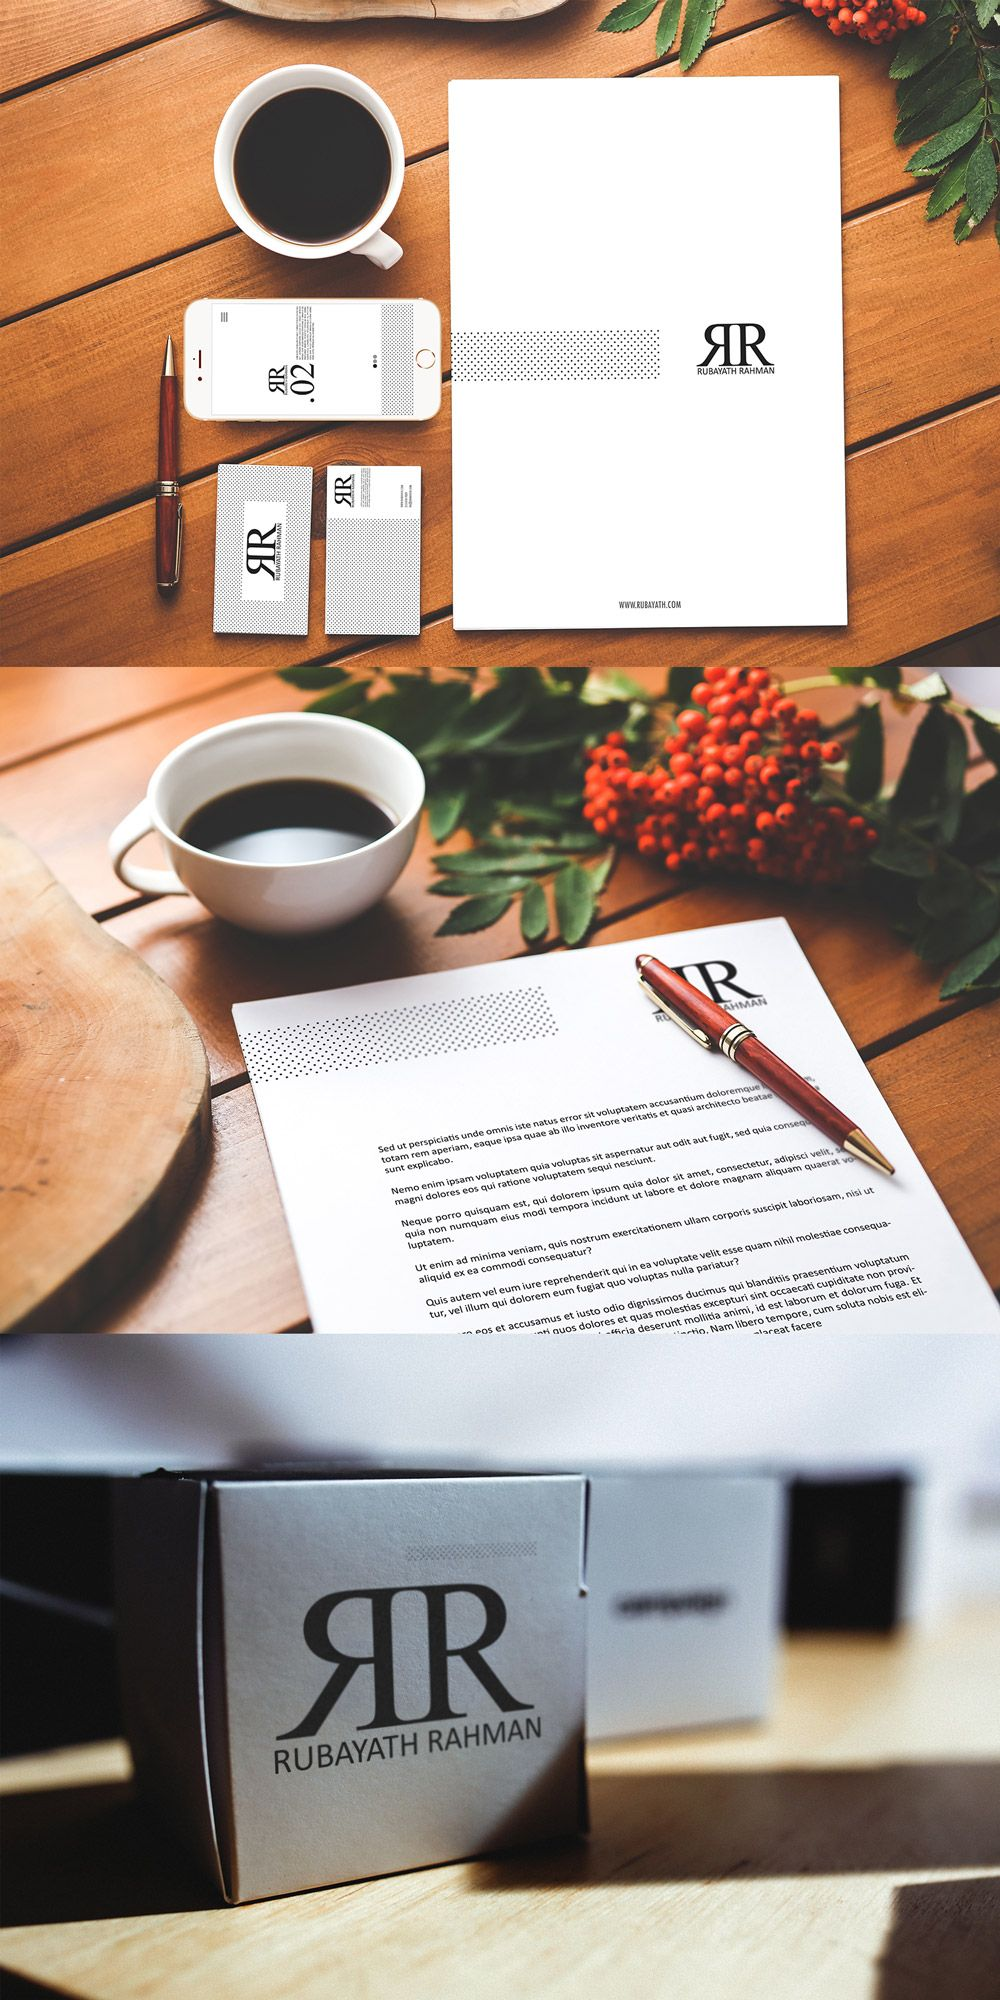 Free branding identity presentation psd mockup mockup business elegant branding identity presentation psd mockup download it for free and use them on your next projects spiritdancerdesigns Image collections